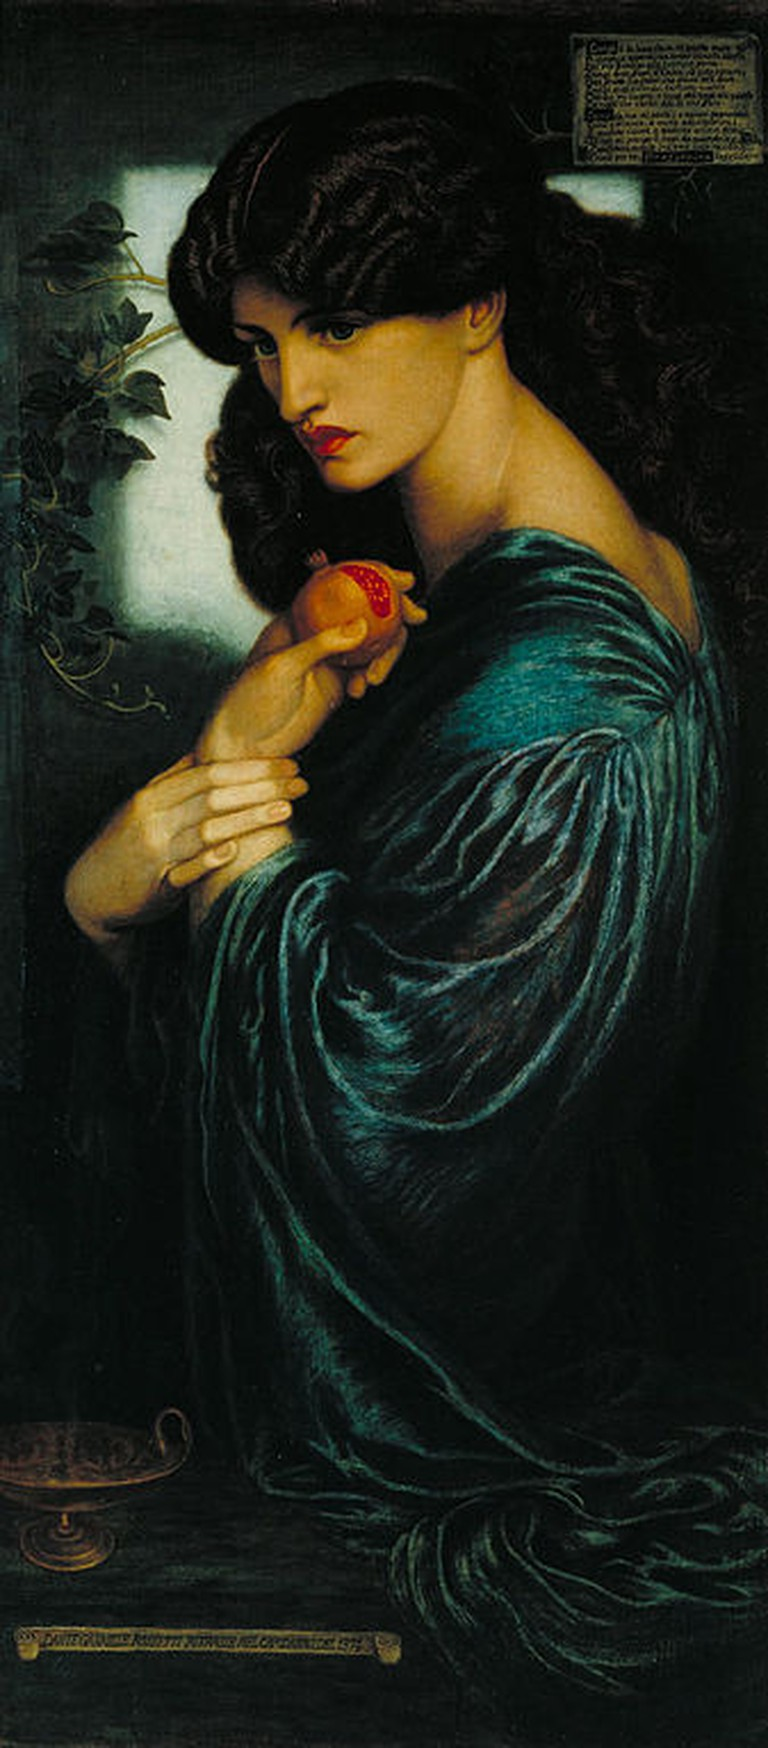 Rossetti, Proserpine, Support: 1251 x 610 mm, Frame: 1605 x 930 x 85 mm, Tate Britain, 1874